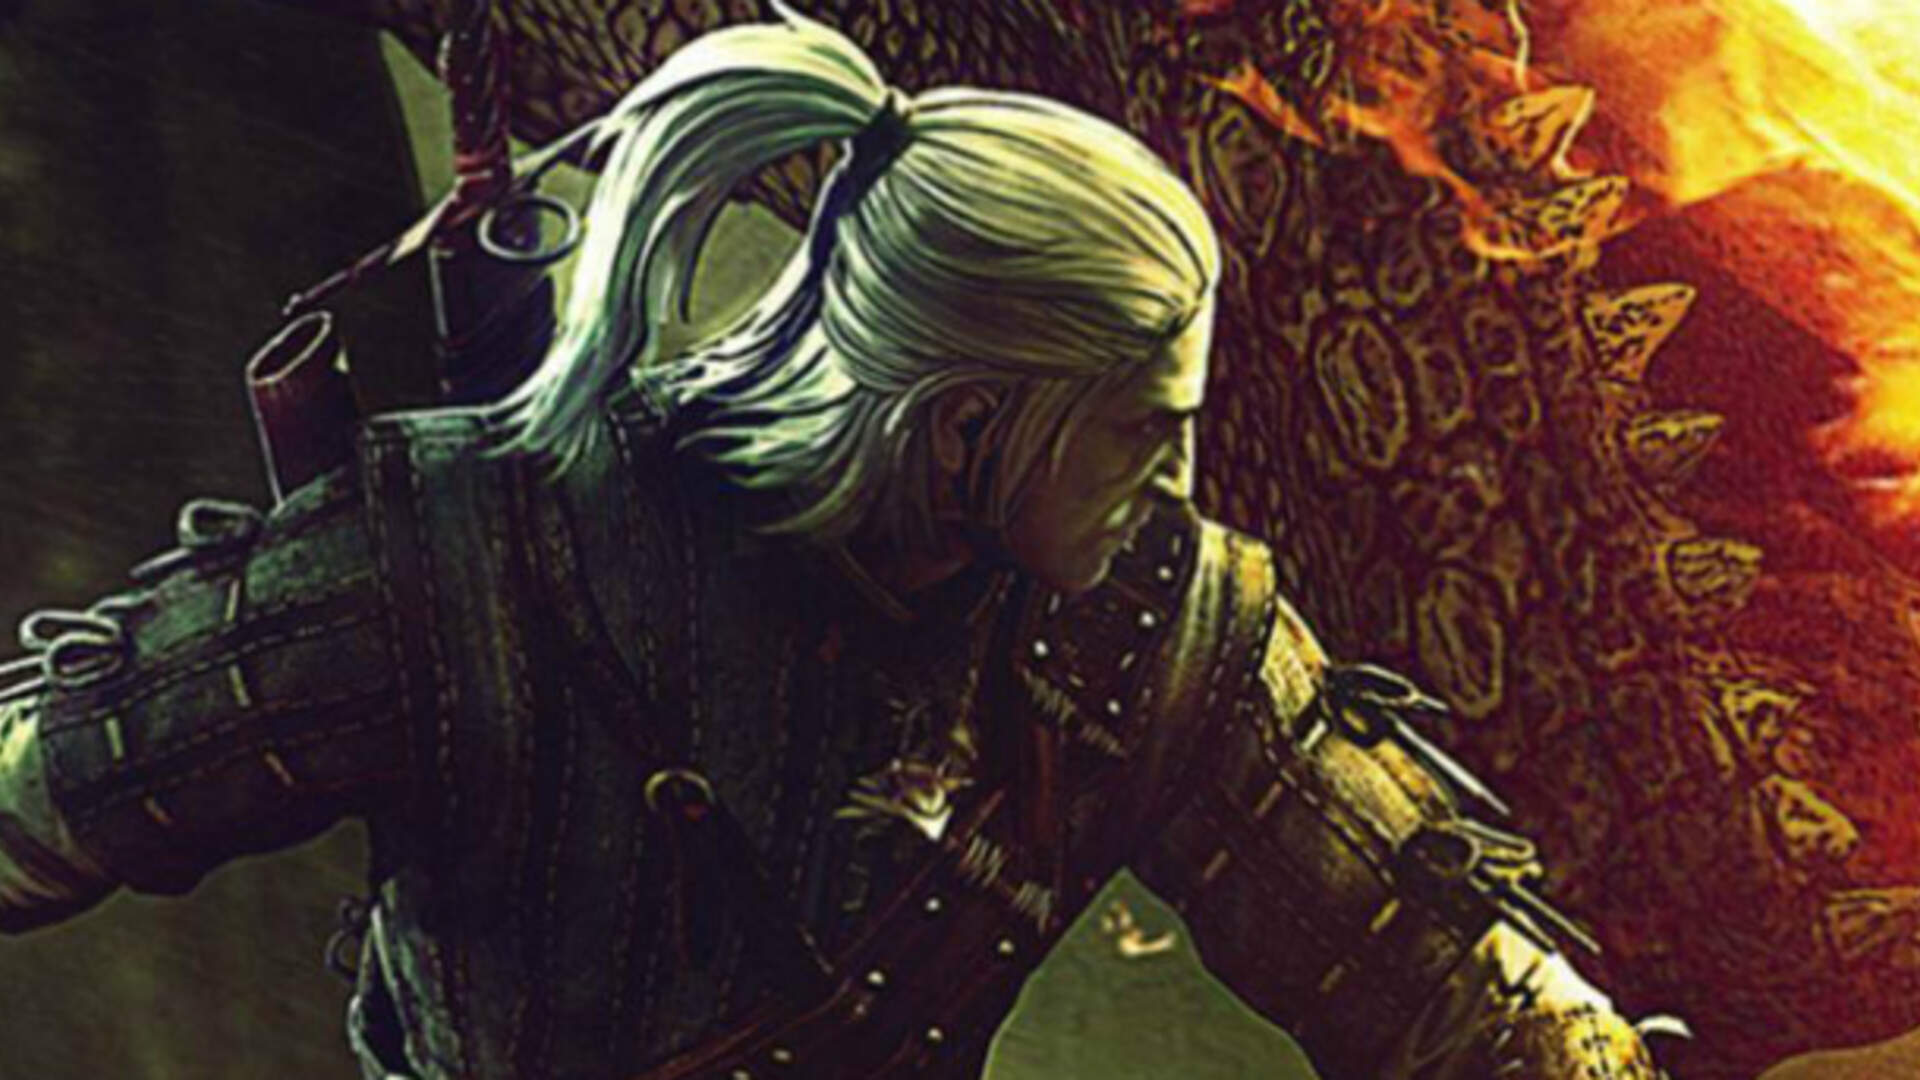 CD Projekt CEO Confirms Witcher Sequel, But It's Not The Witcher 4